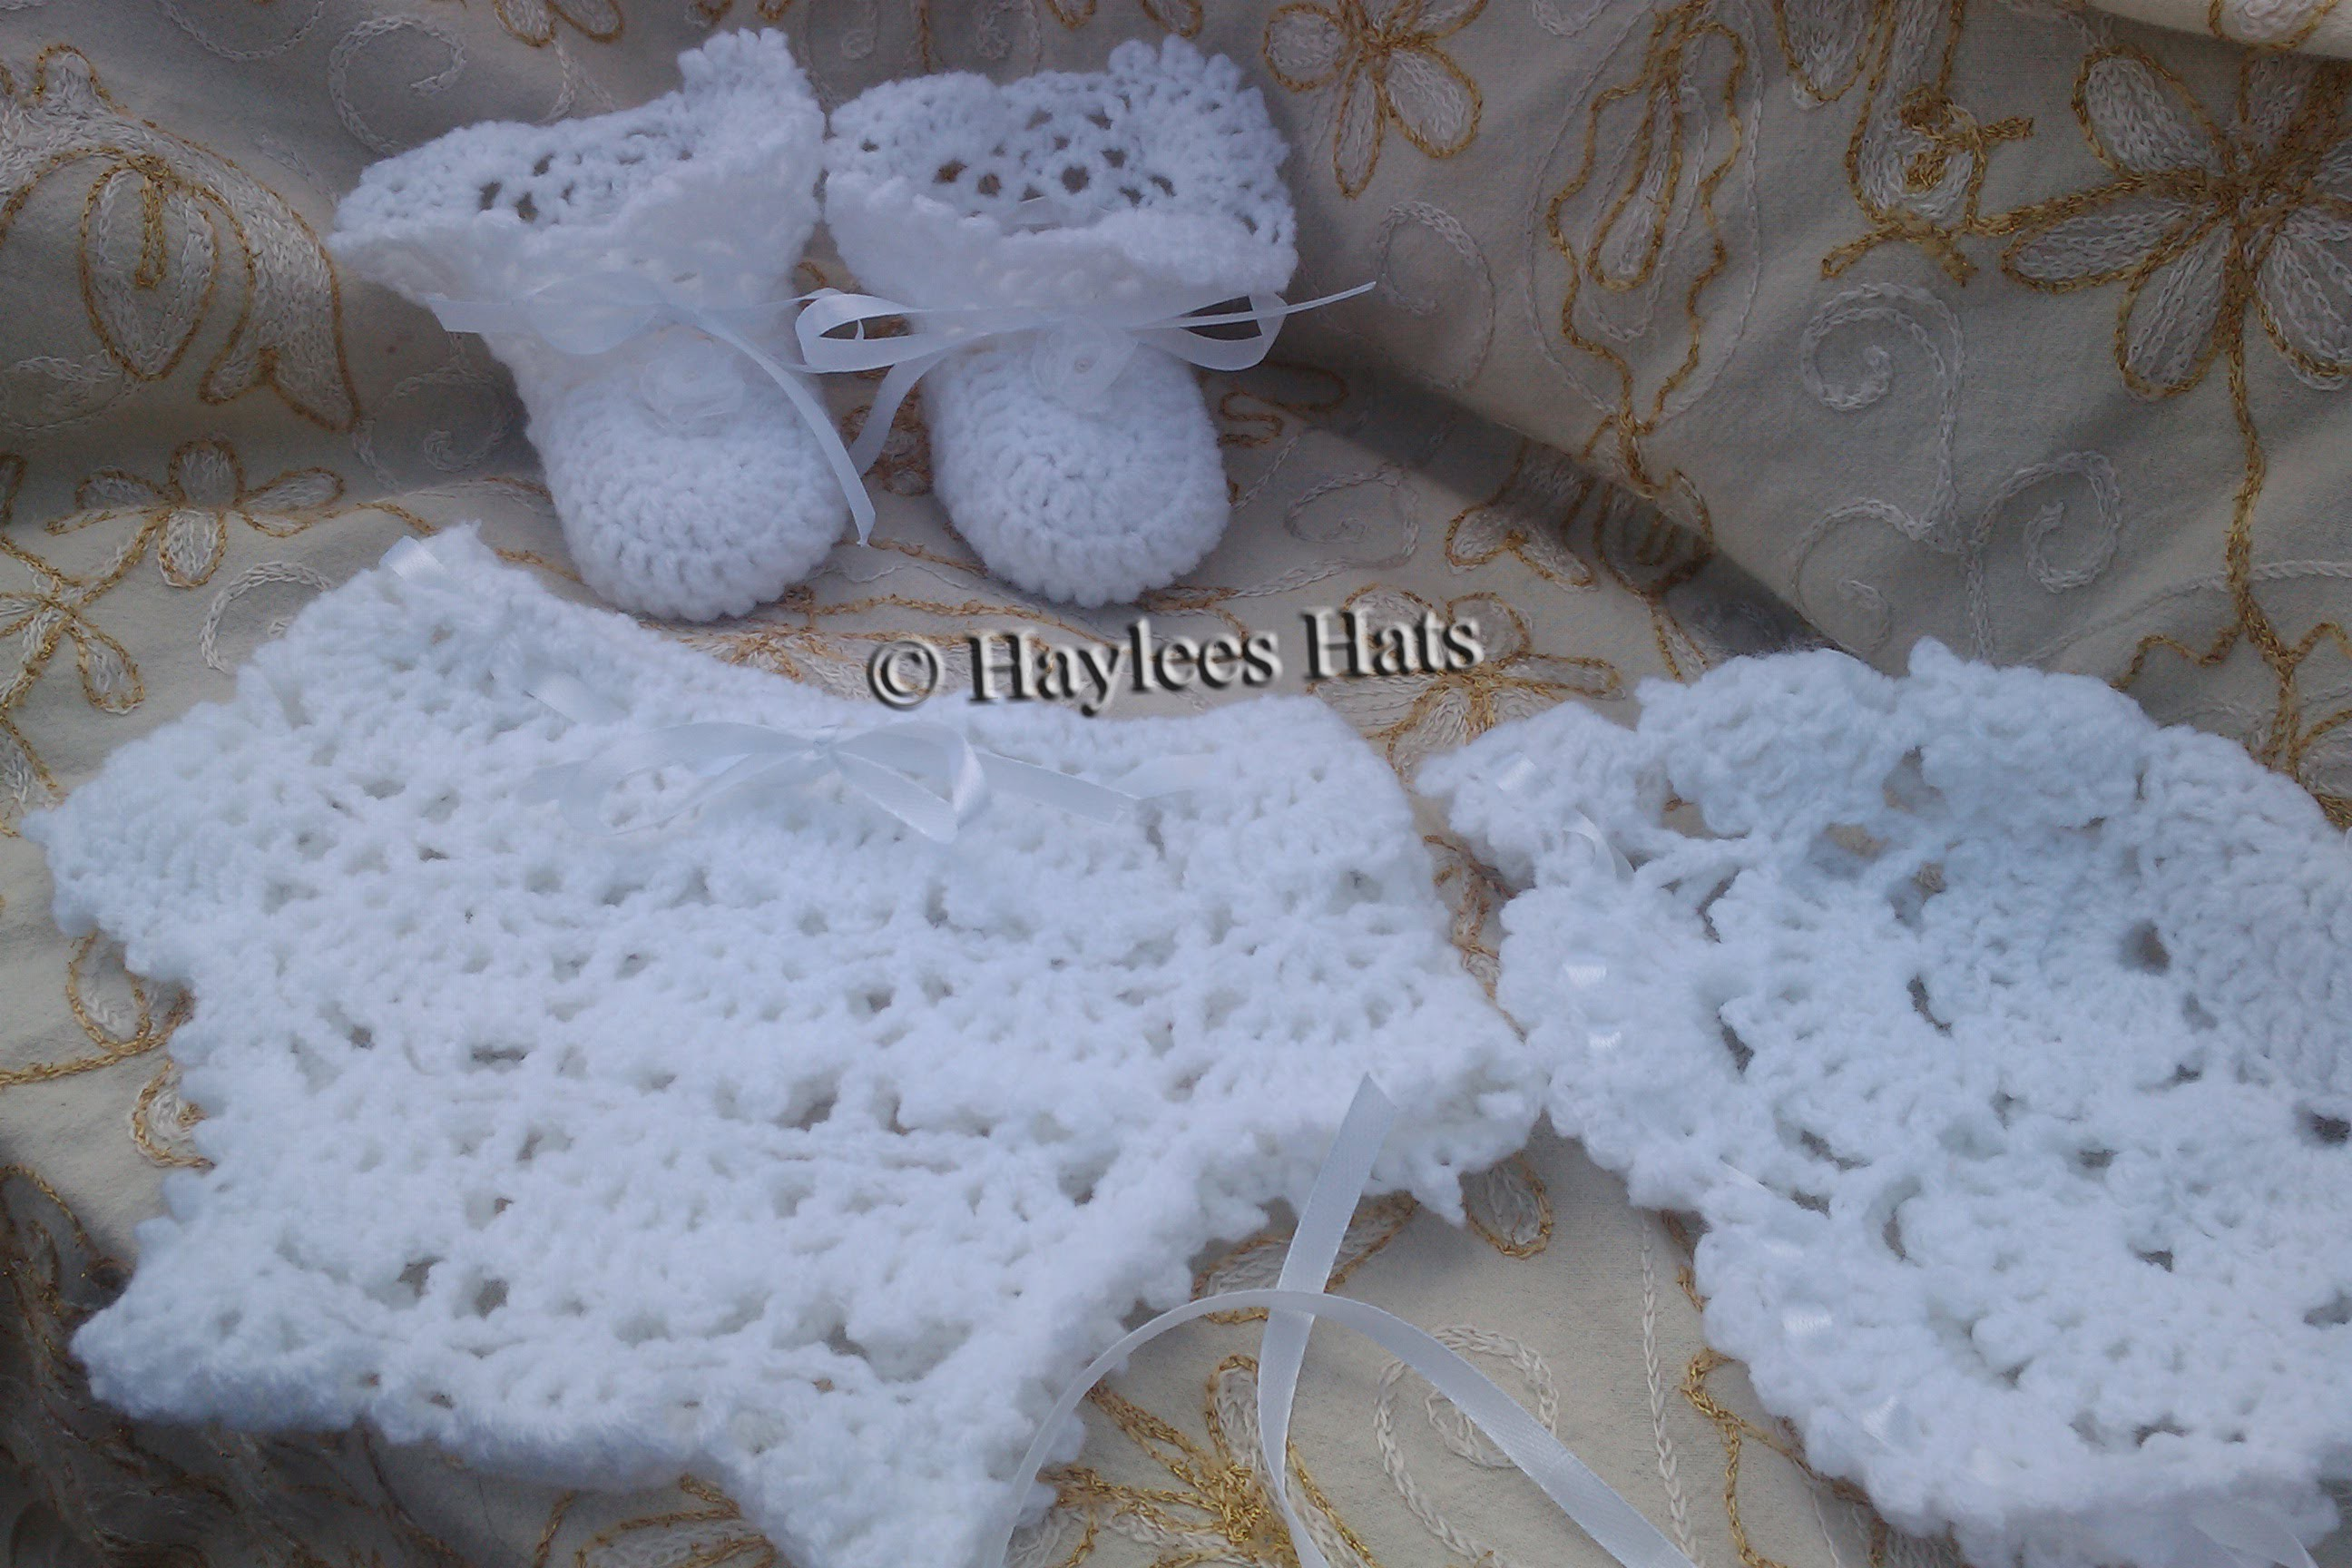 Baby Heirloom crochet set ,baby daisy hat & sweater set| Fresh off tha hook | Haylees Hats